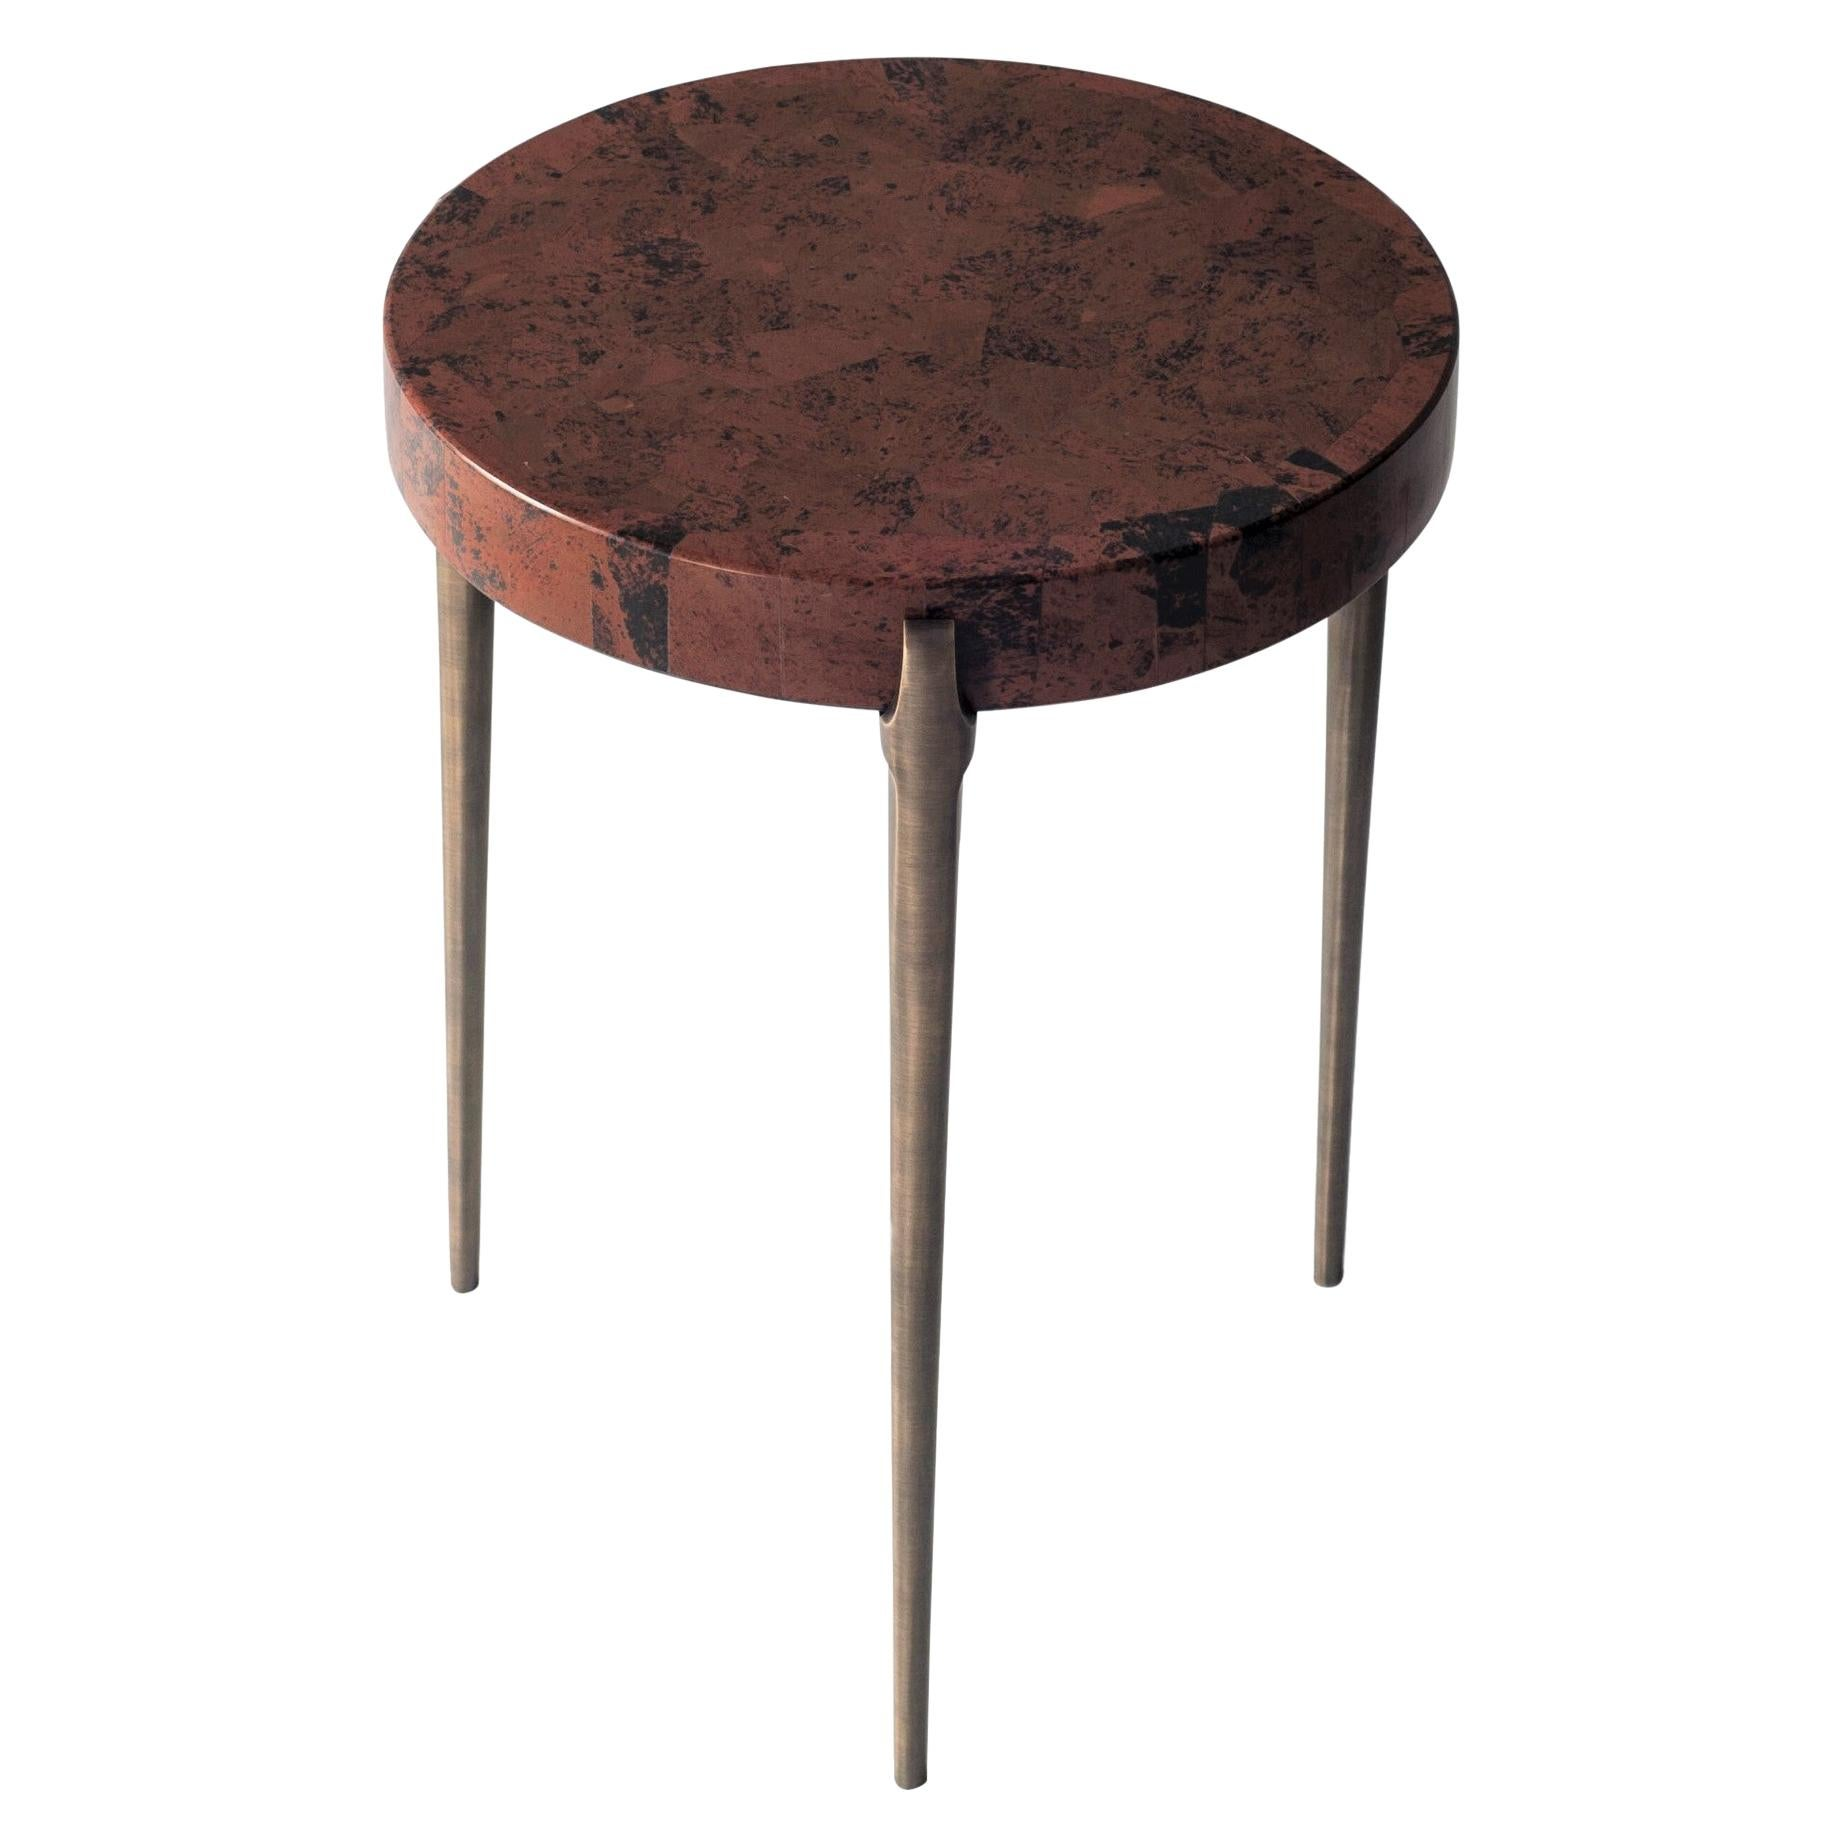 Acantha Side Table in Marconi Stone by DeMuro Das